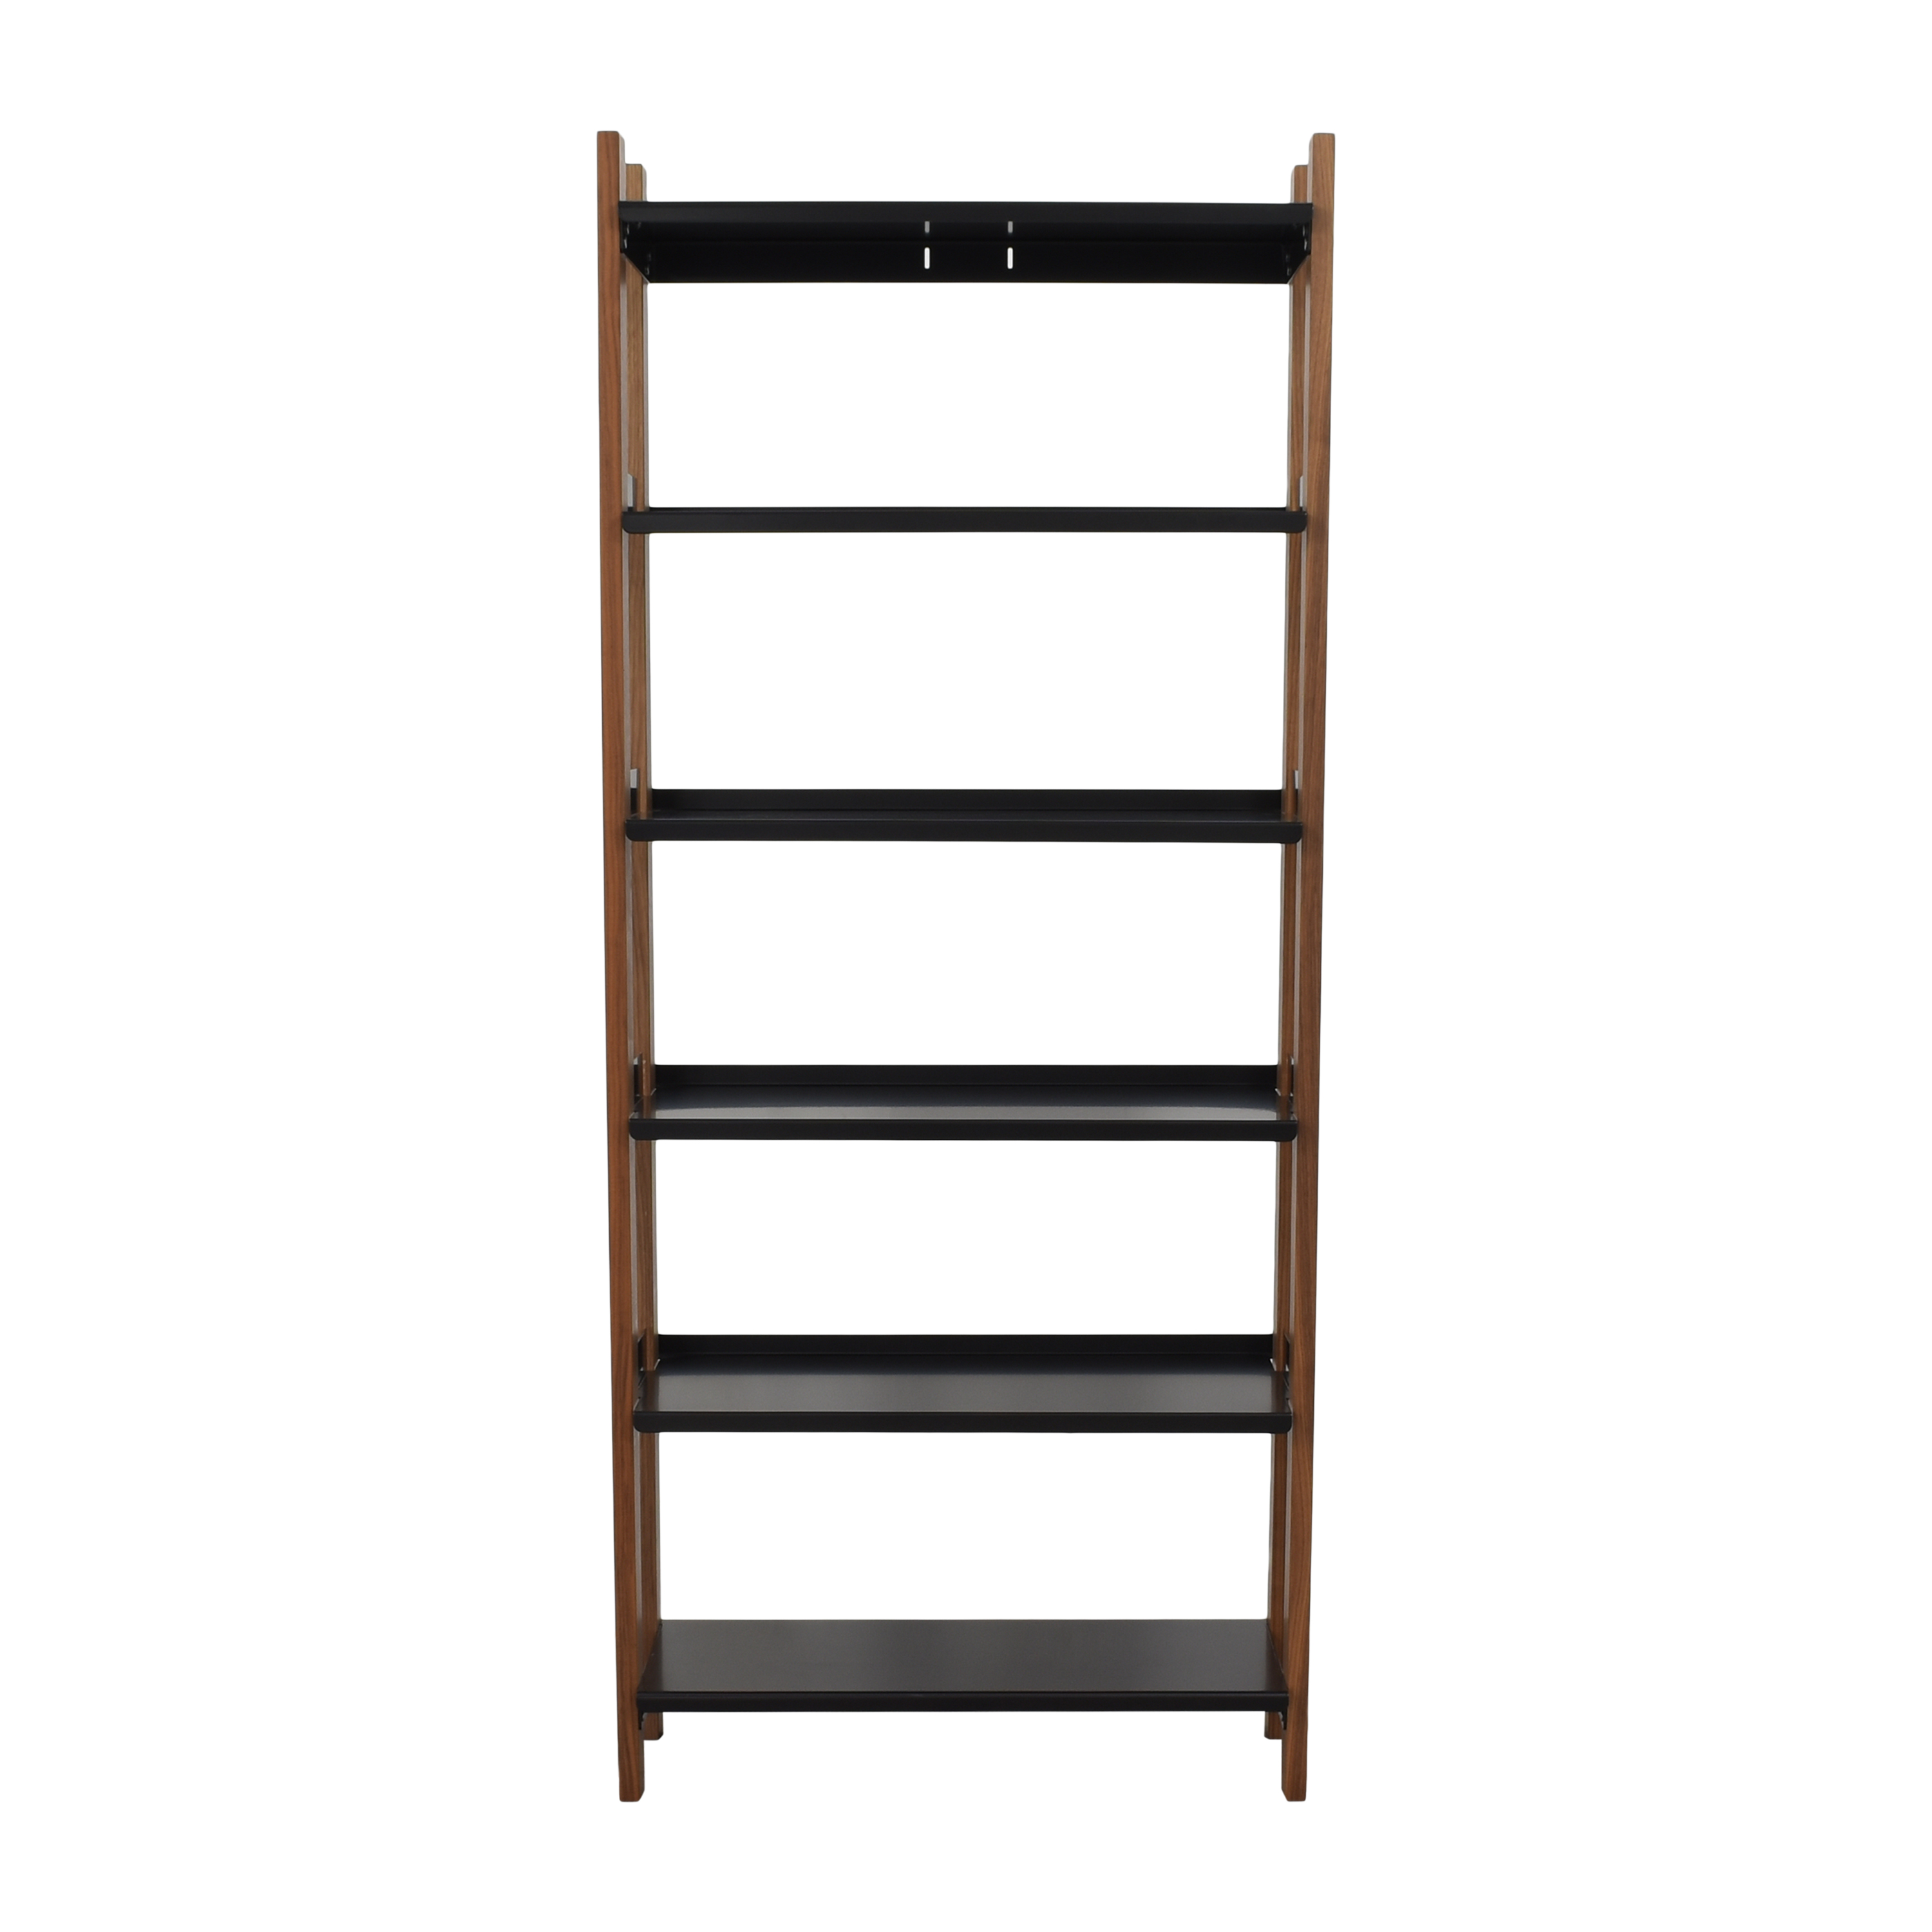 Floyd Floyd Home The Shelving Unit for sale